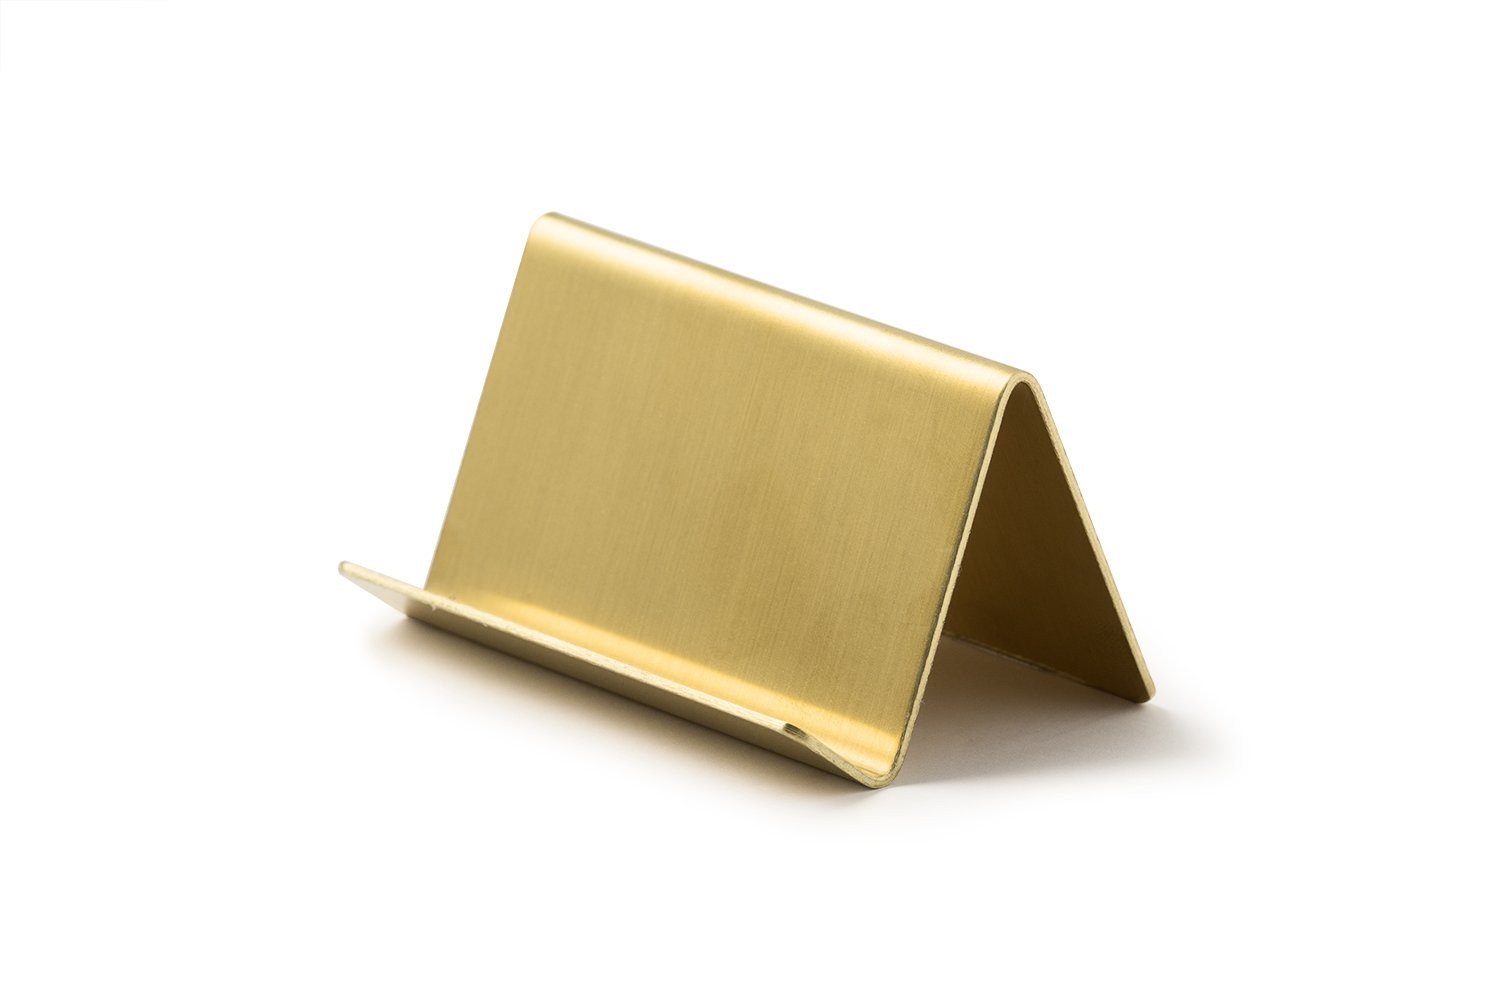 Amazon.com : Modern Brass Business Card Holder : Office Products